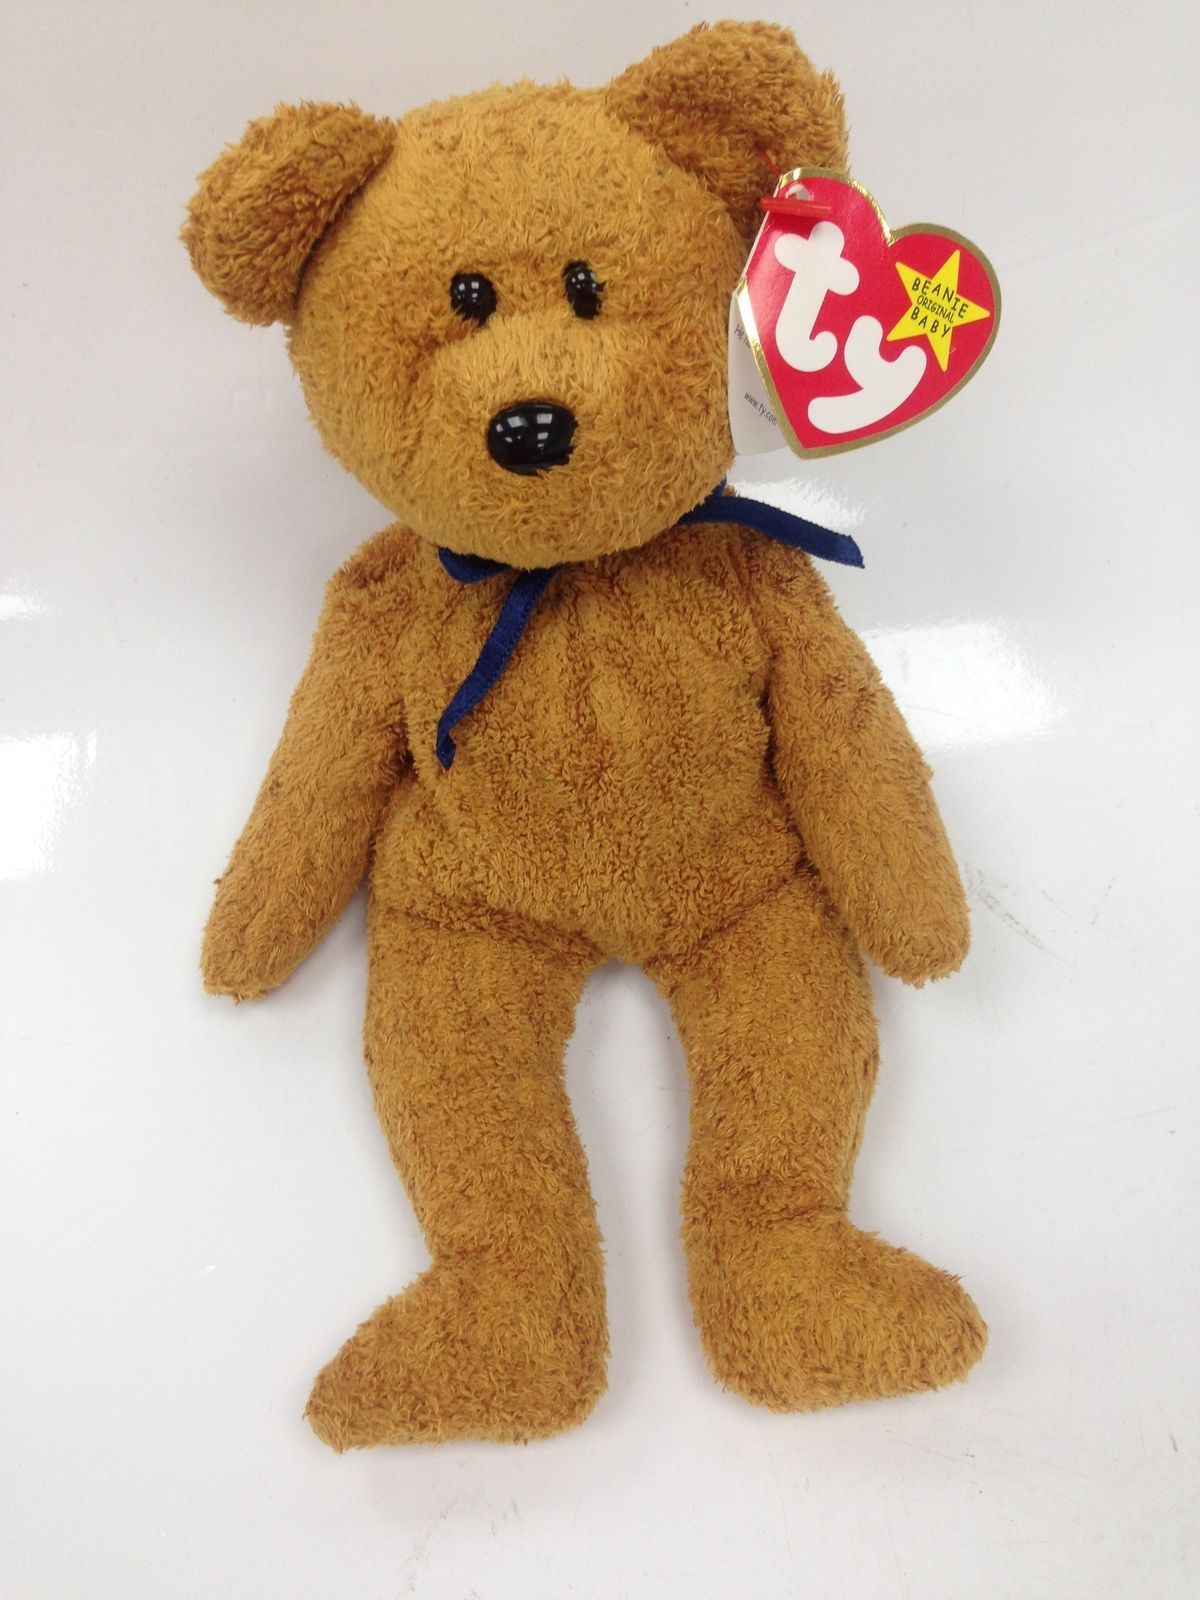 da76a2aeba7 TY Beanie Baby Fuzz with Rare date errors on Tag and Hologram label 883